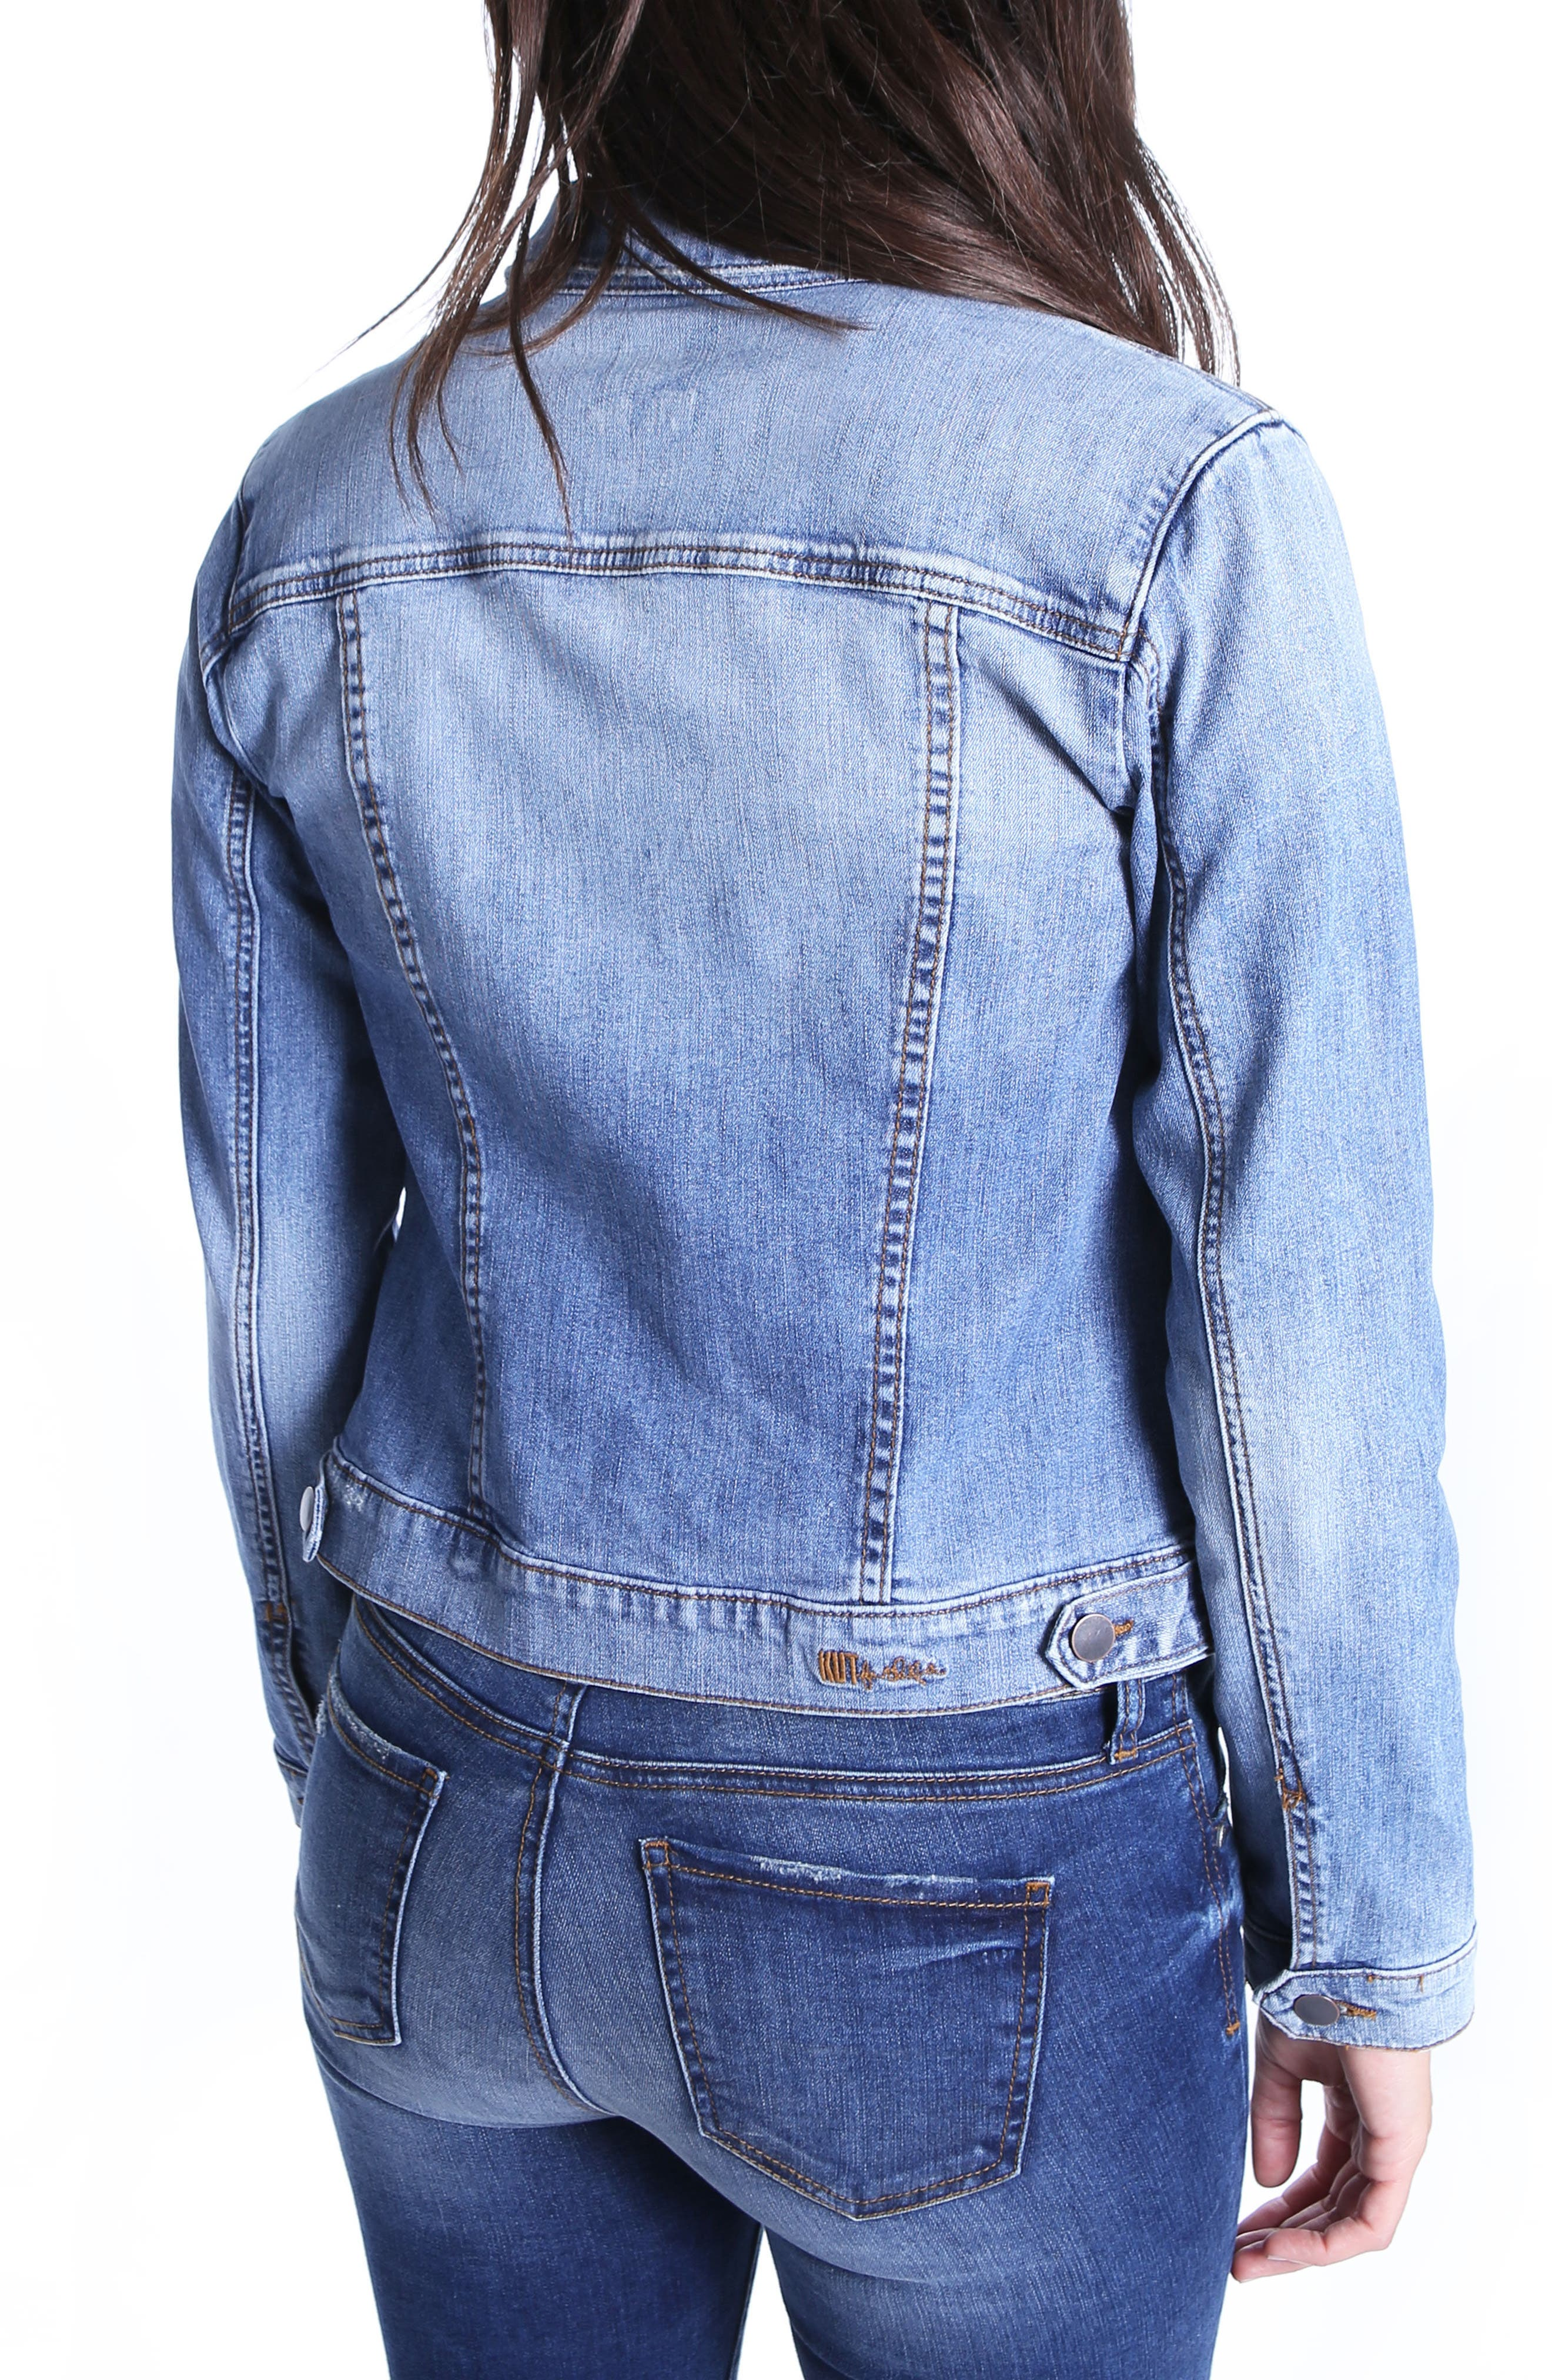 Juko Denim Jacket,                             Alternate thumbnail 2, color,                             400